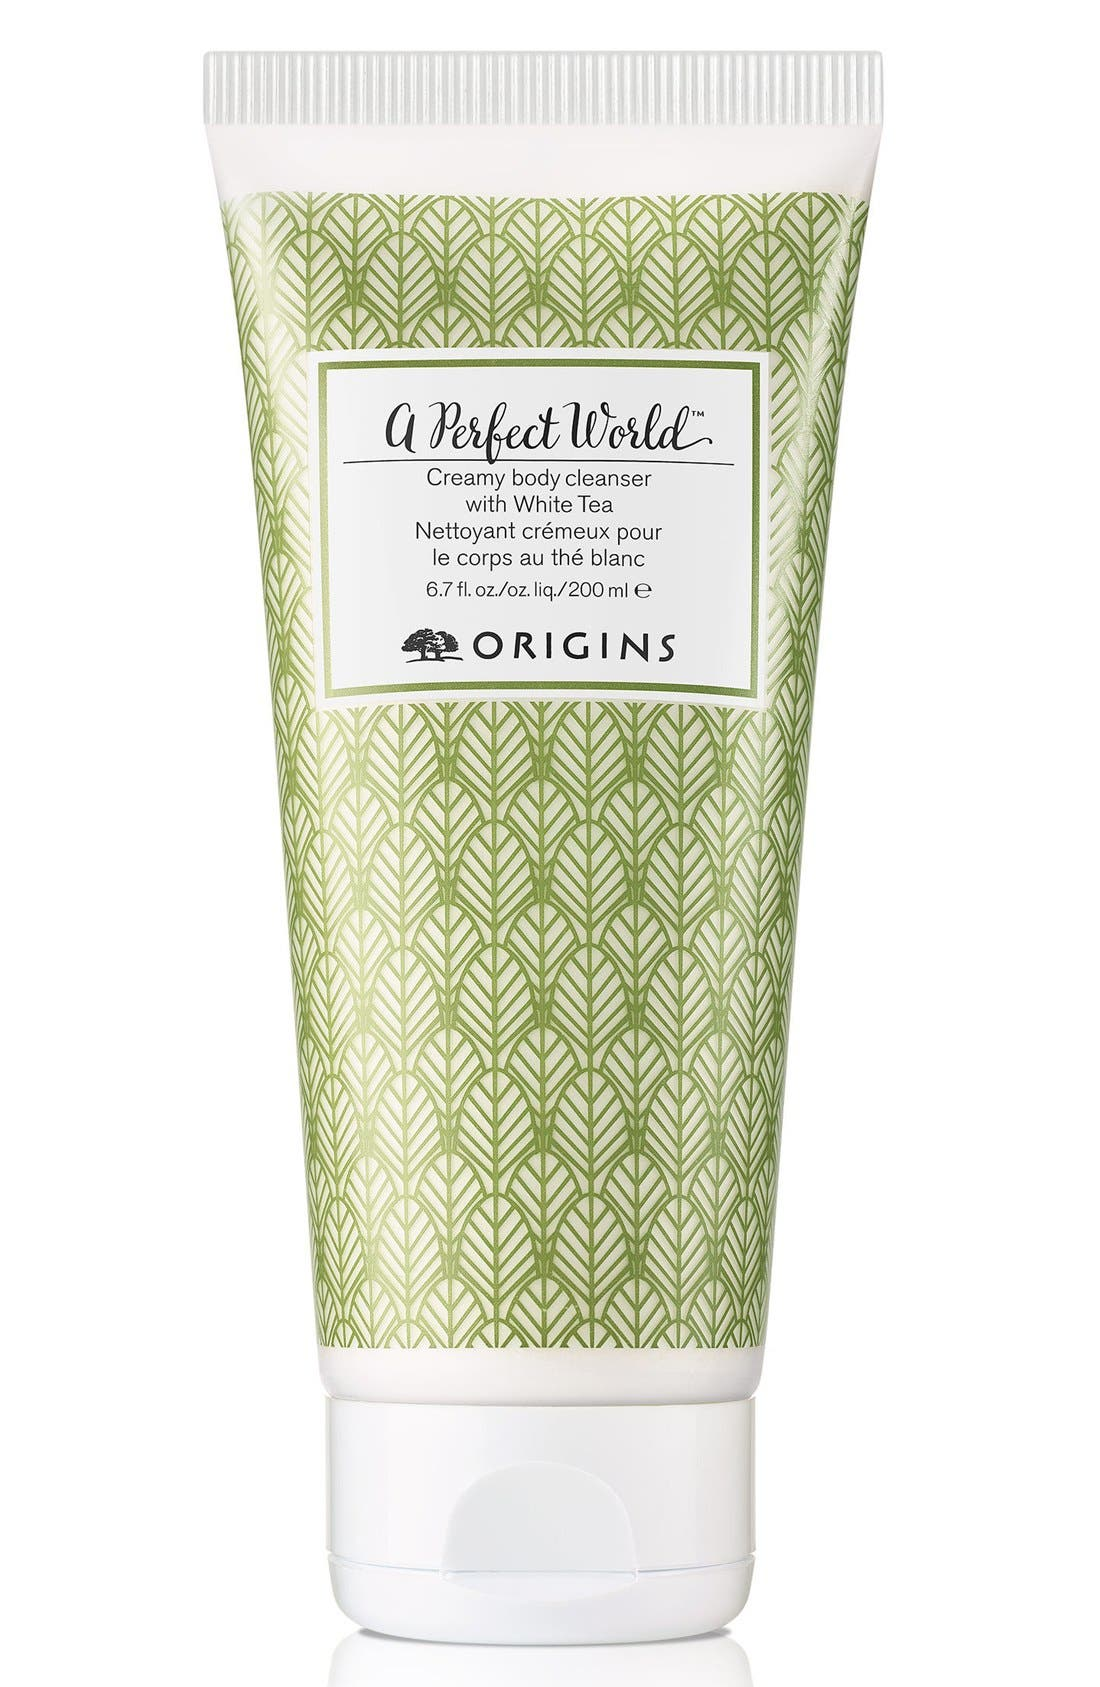 Origins A Perfect World™ Creamy Body Cleanser with White Tea